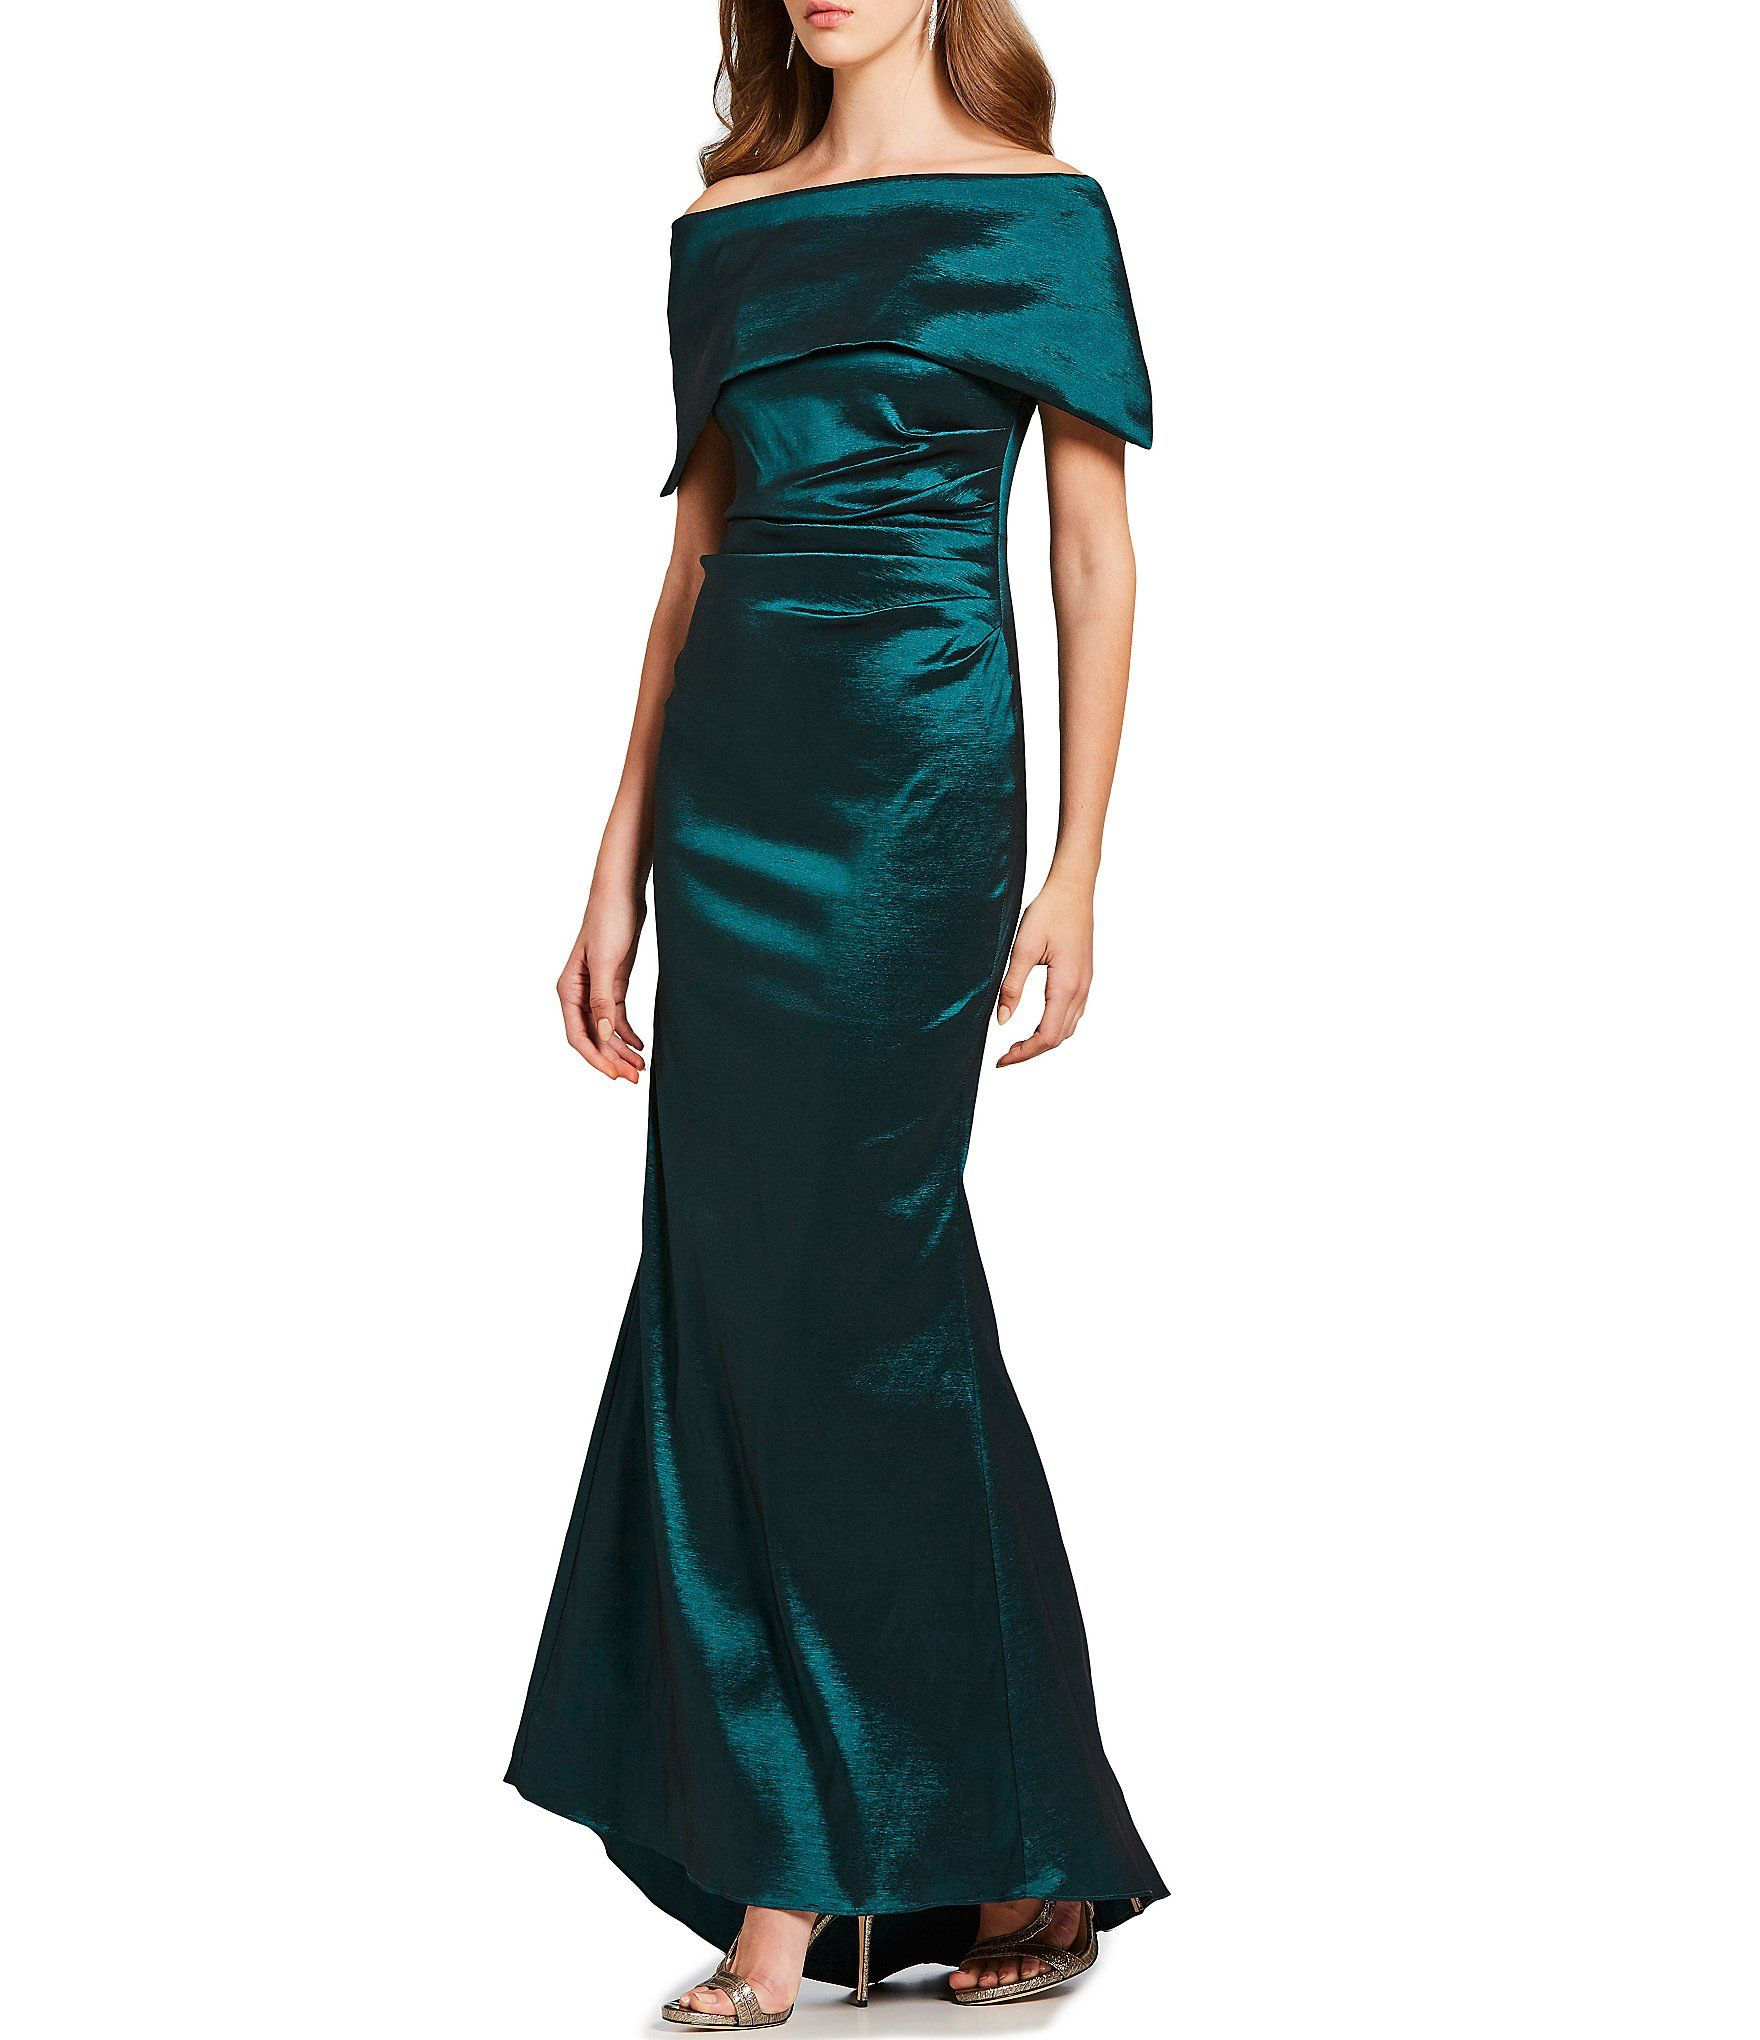 7ea795baf4a Shop for Vince Camuto Off-the-Shoulder Satin Sheath Gown at Dillards.com.  Visit Dillards.com to find clothing